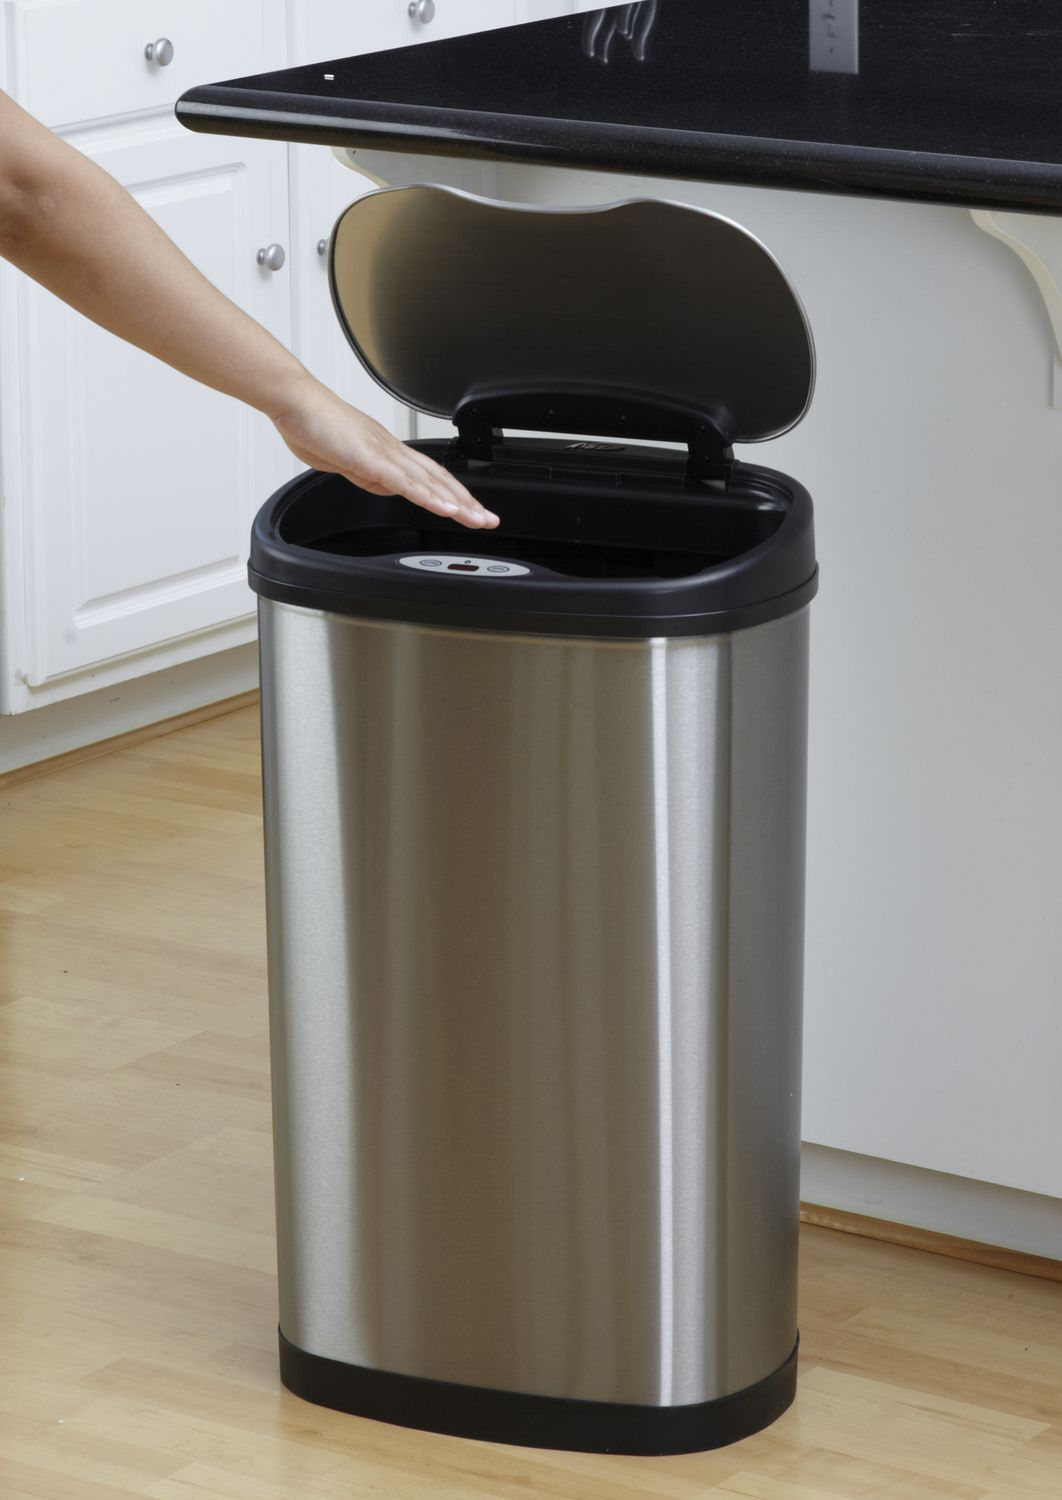 Kitchen Garbage Can Nine Stars Motion Sensor Oval Touchless 13 Gallon Trash Can